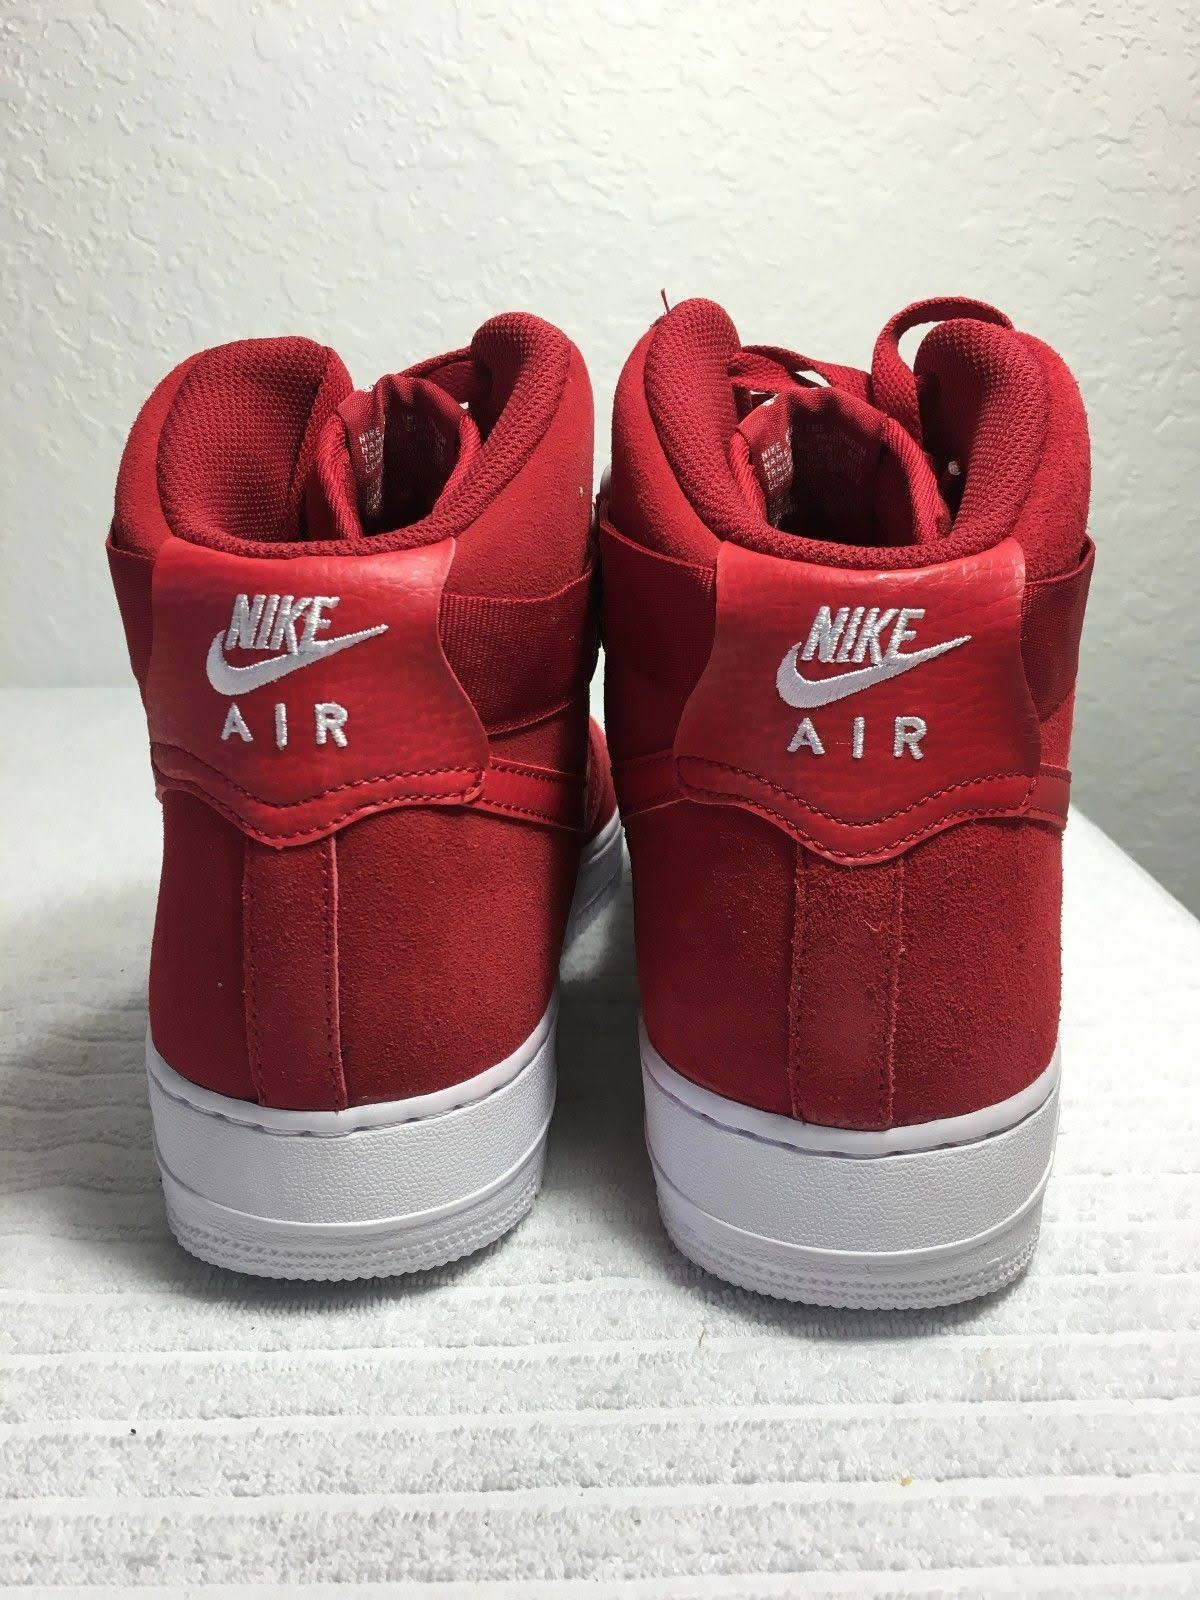 1 5 604 11 Nieuw Force Rouge High 315121 Gym Nike Air RedWhite Roodwit Herenmaat '07 UzLSGVjqpM